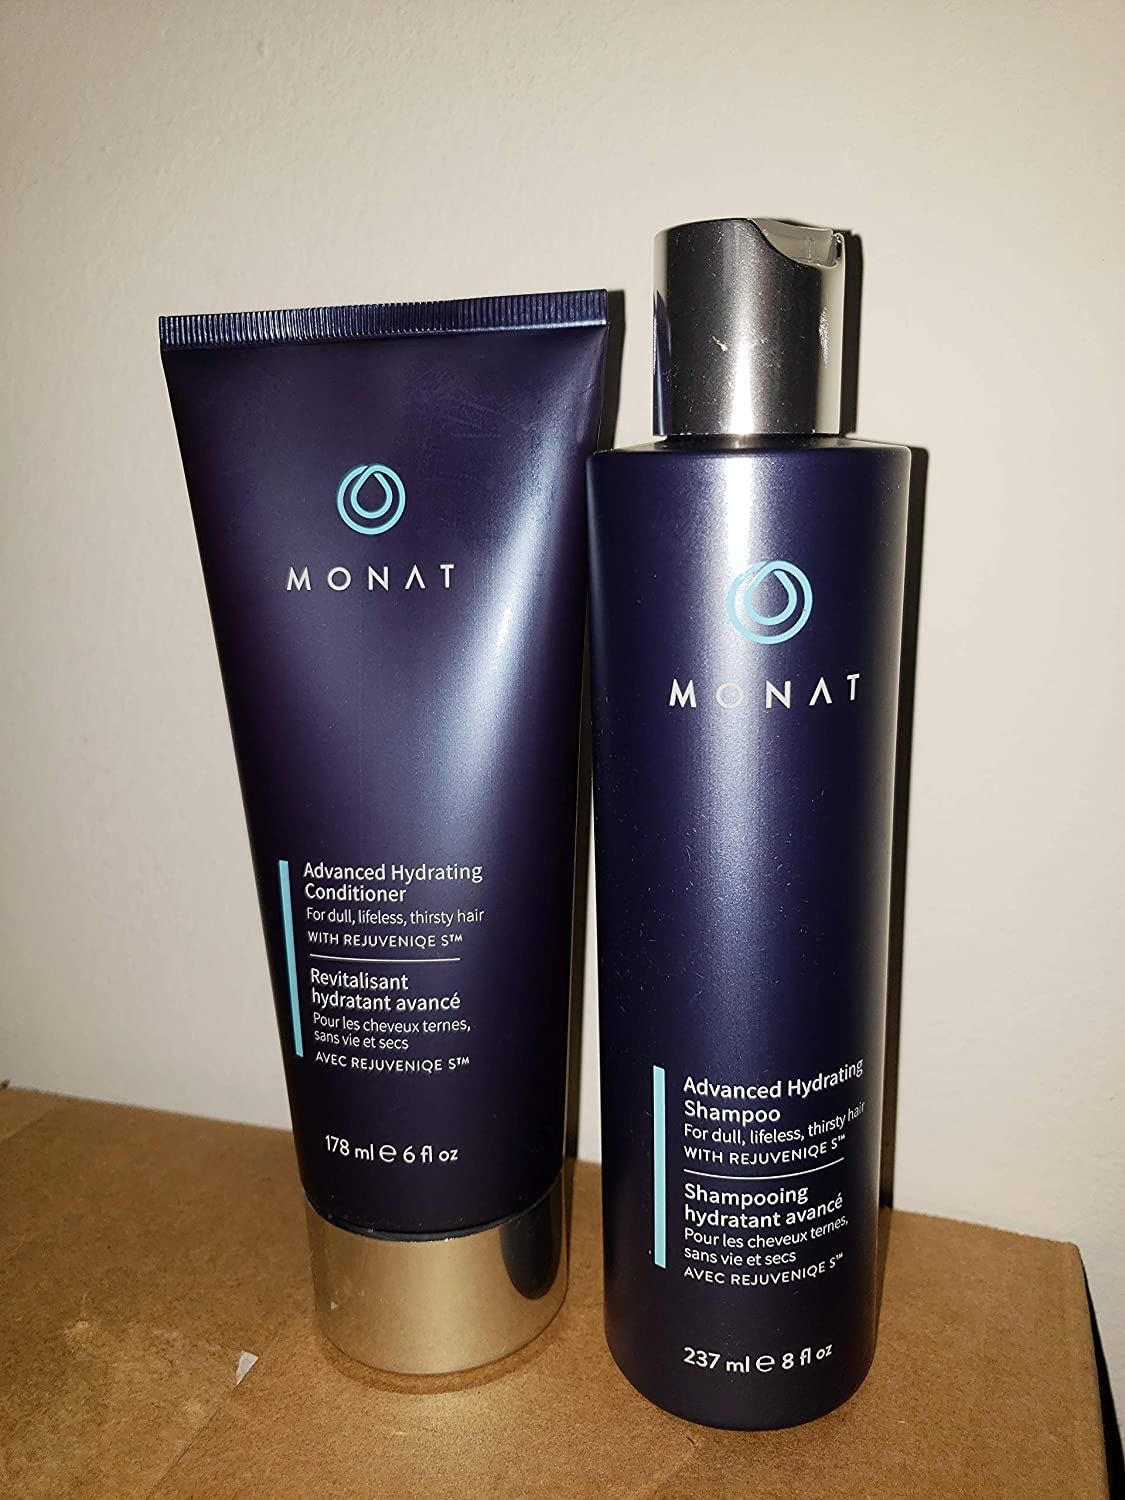 Monat Advanced Hydrating Conditioner and Shampoo, NEW